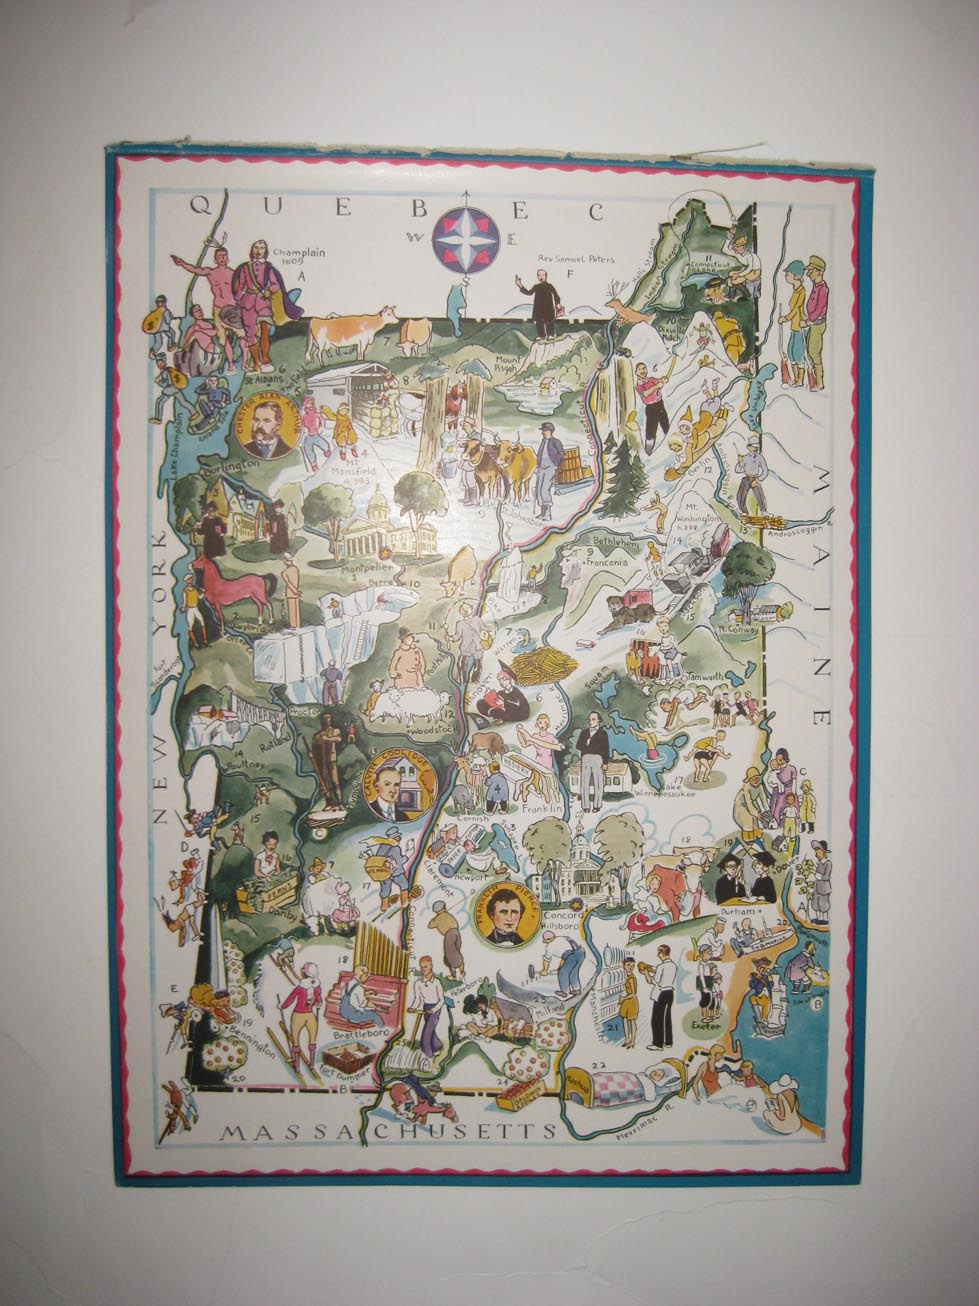 New York Published by Washington Square Bookshop 1925 pictorial map POSTER 11749